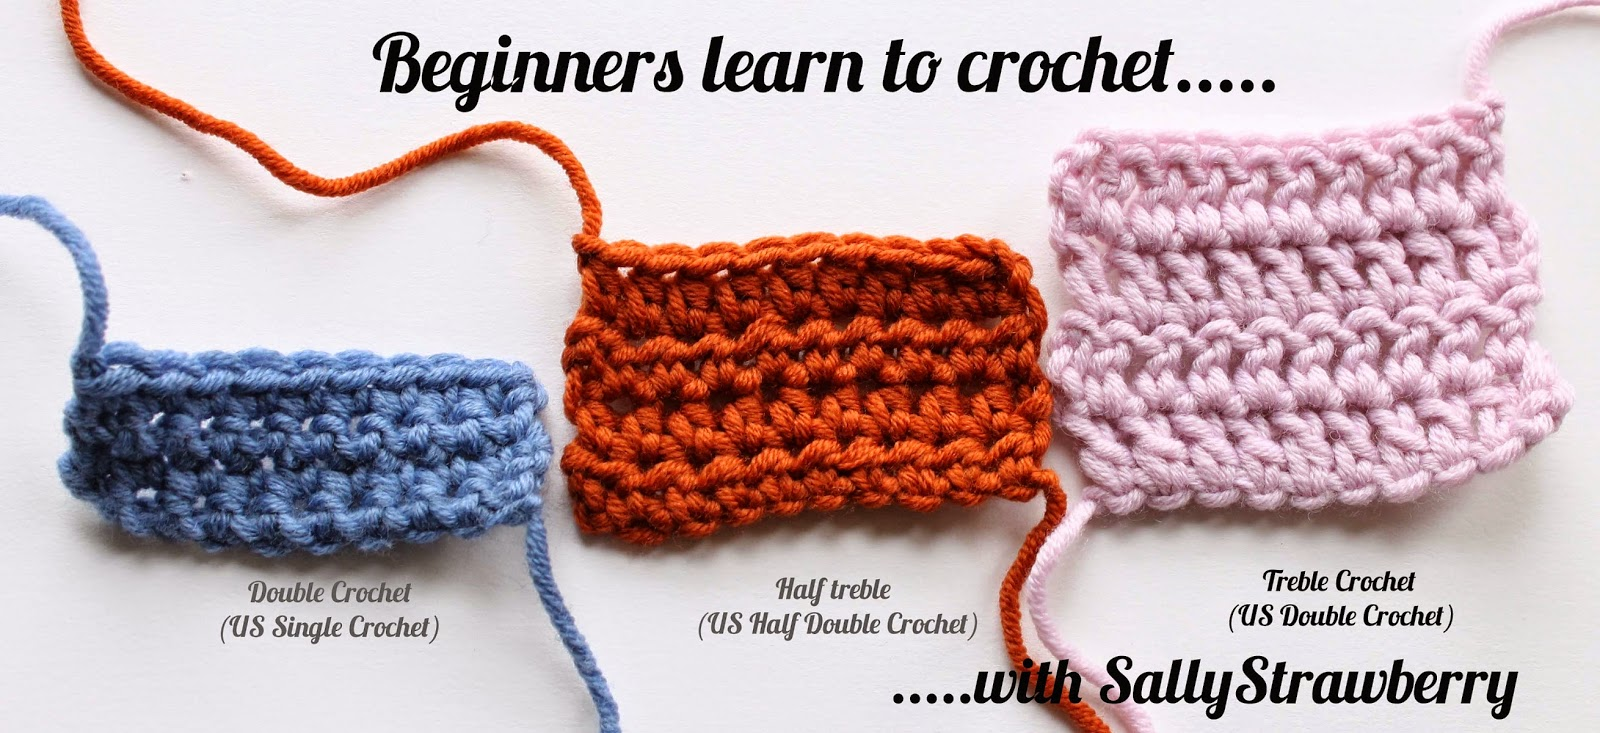 How To Crochet Beginner Patterns : SallyStrawberry: Beginners Learn to Crochet: The Treble